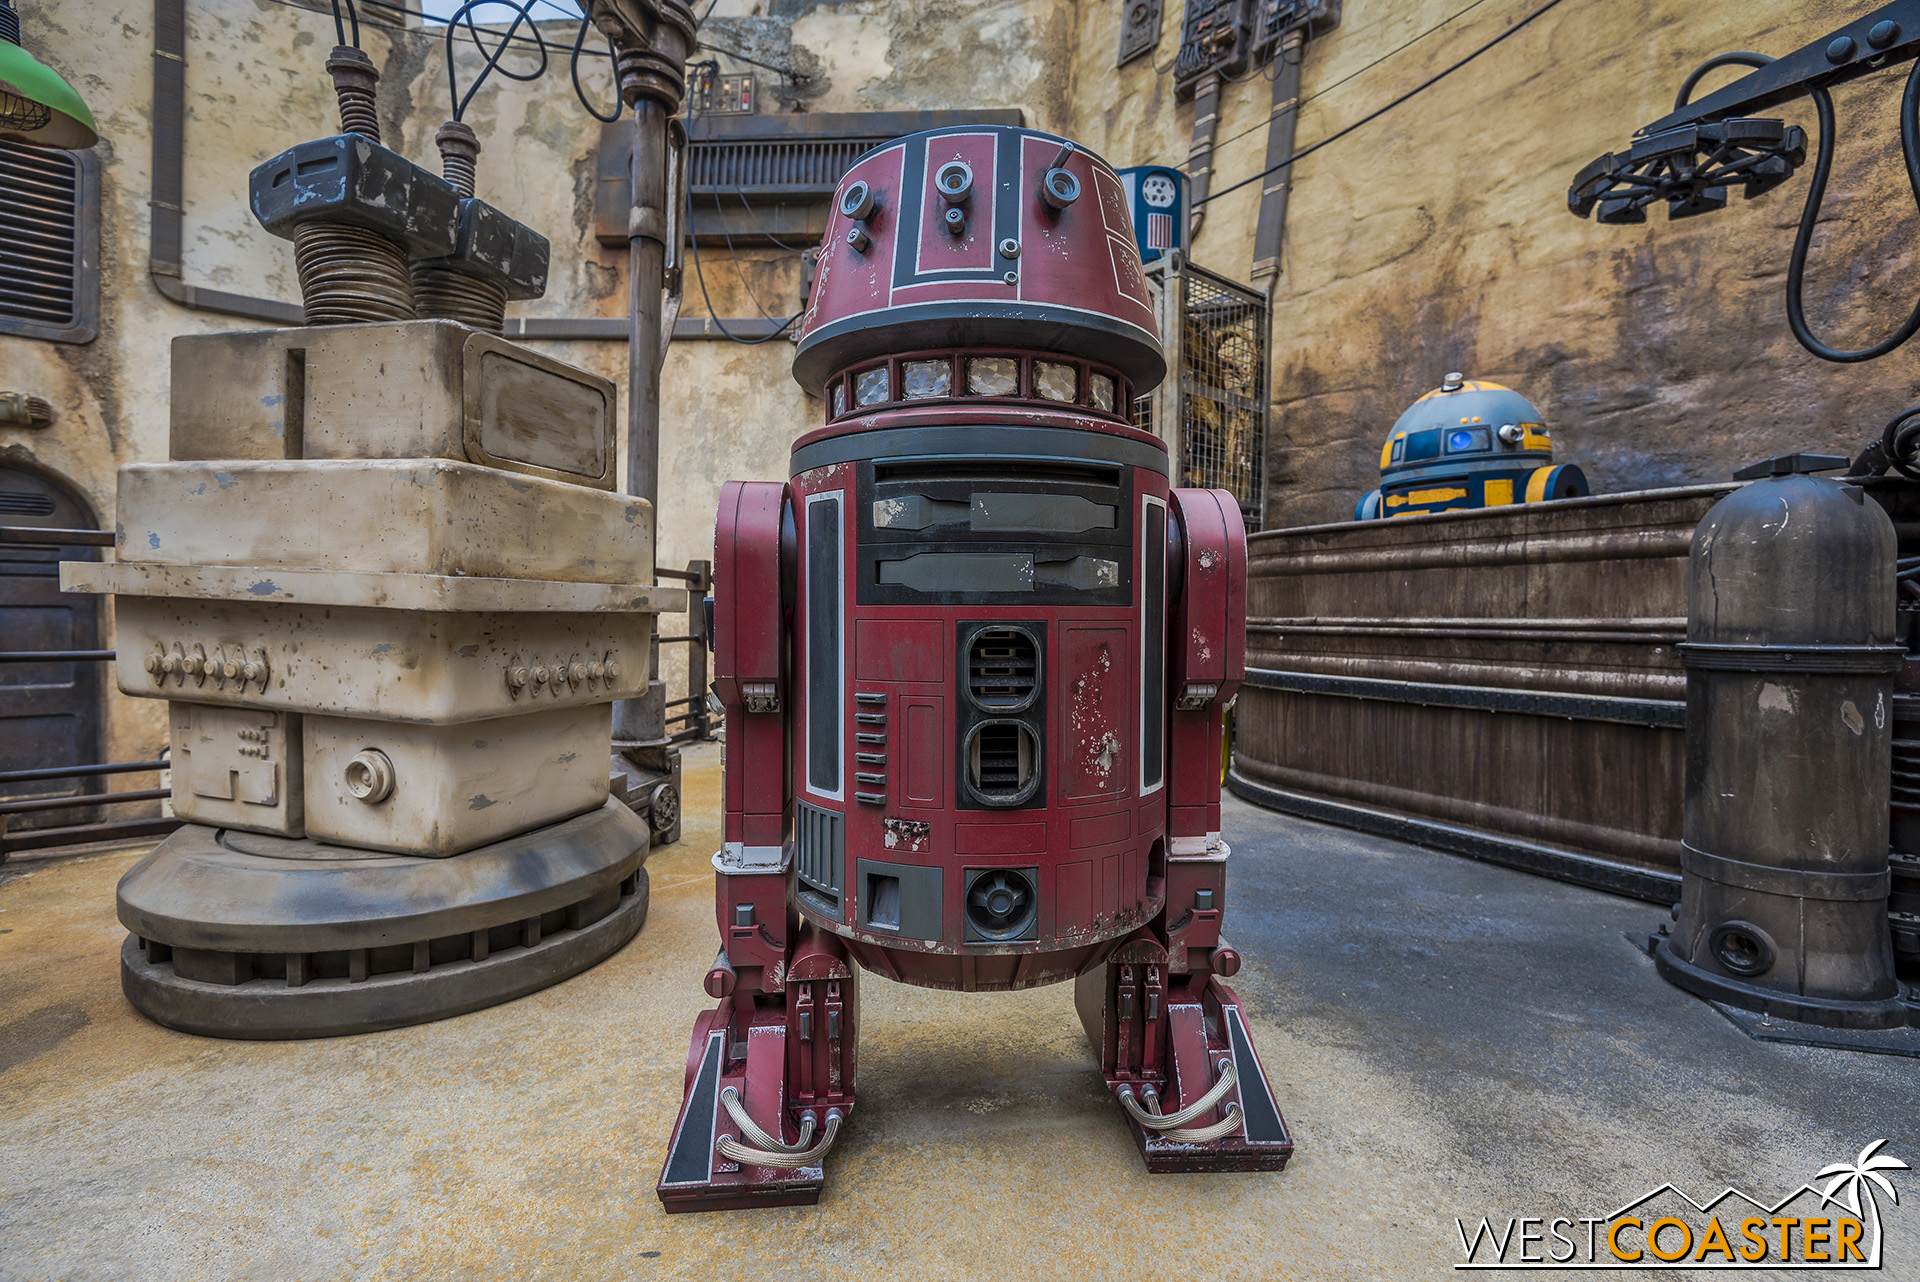 There are plenty of droids and photo ops in Batuu.